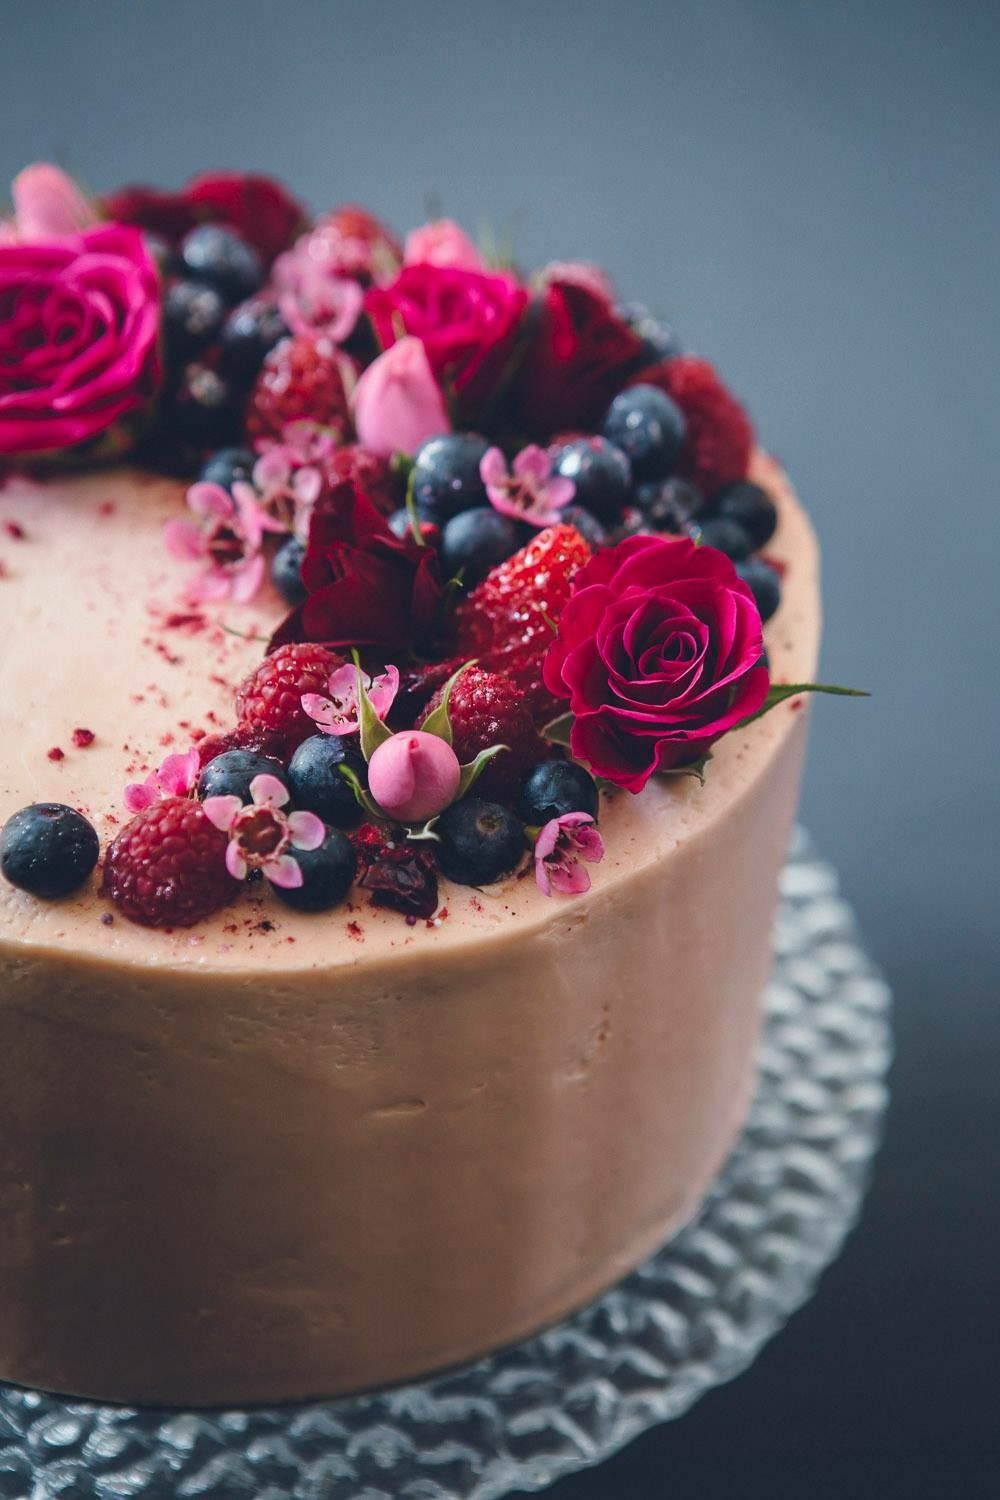 Chocolate Cake Decorated With Berries And Flowers Easy Chocolate